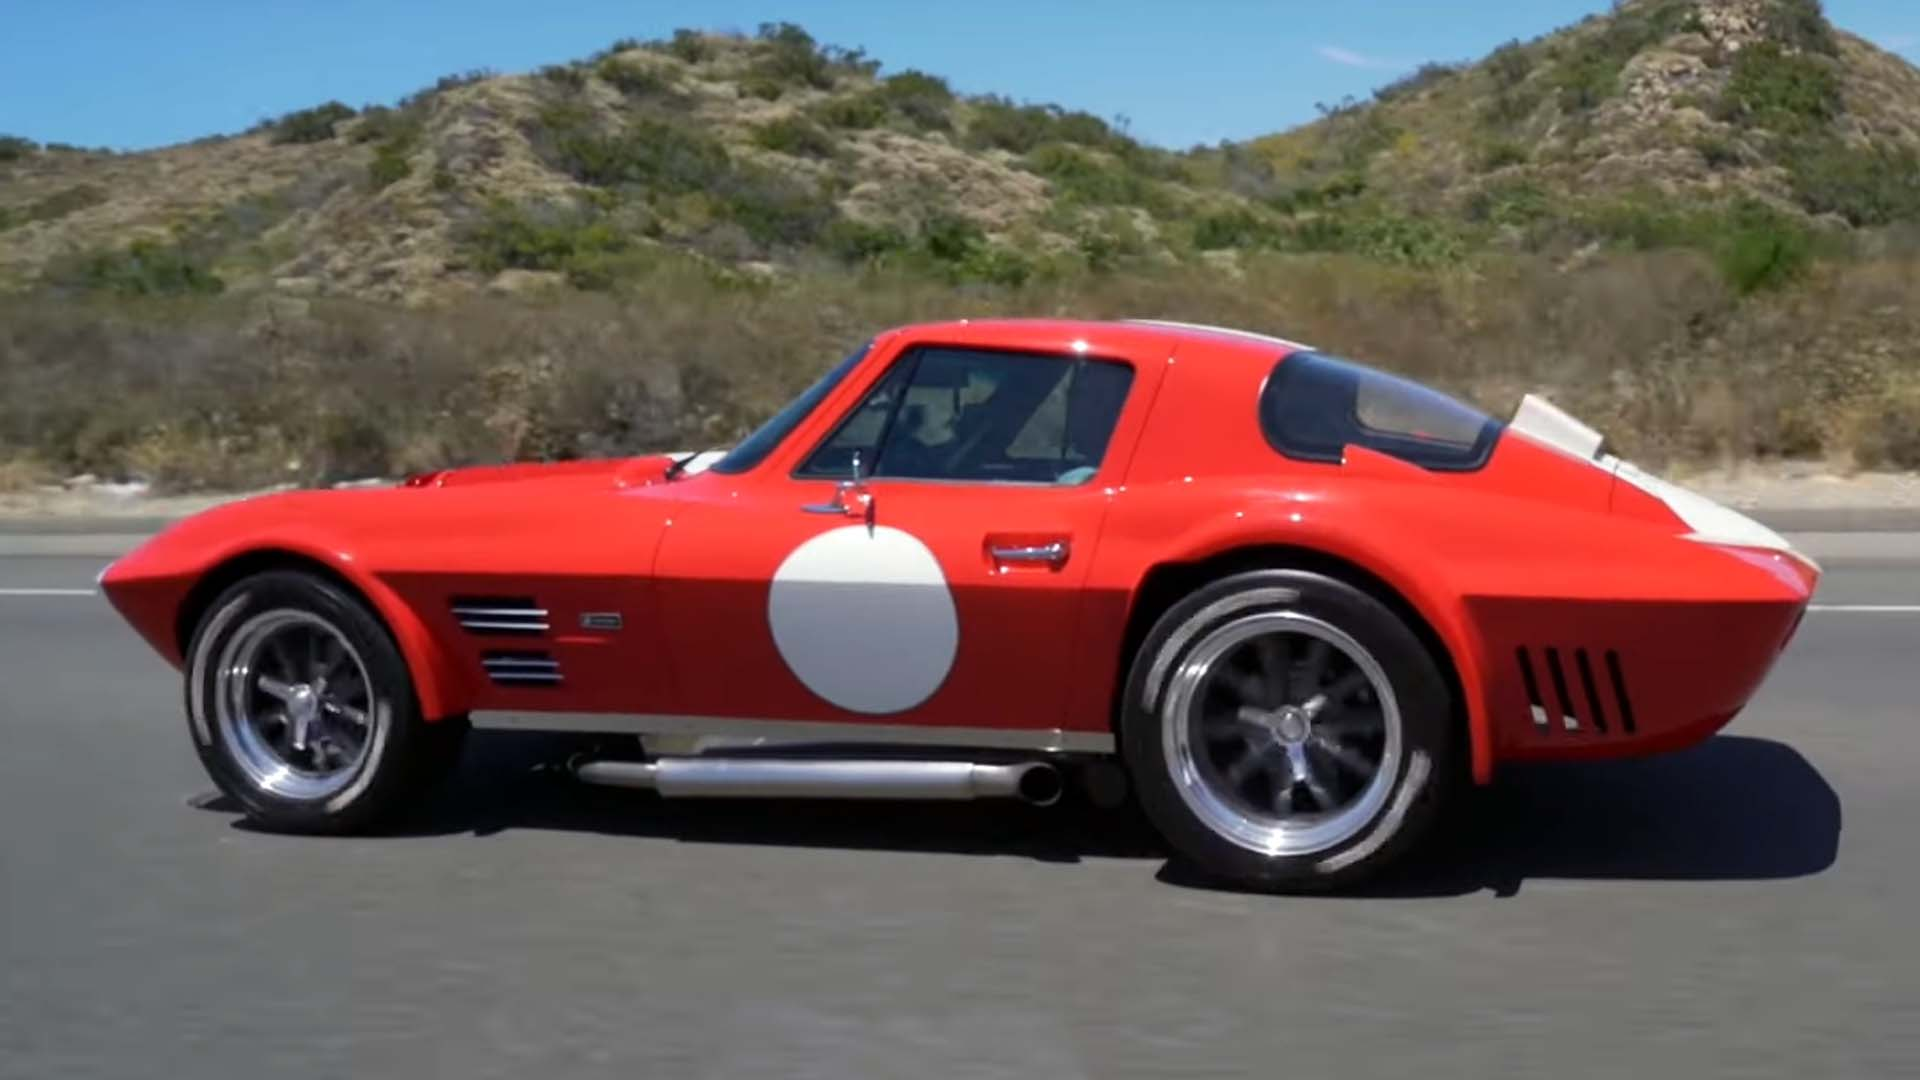 Learn more about the legendary Grand Sport Corvette from Superformance.